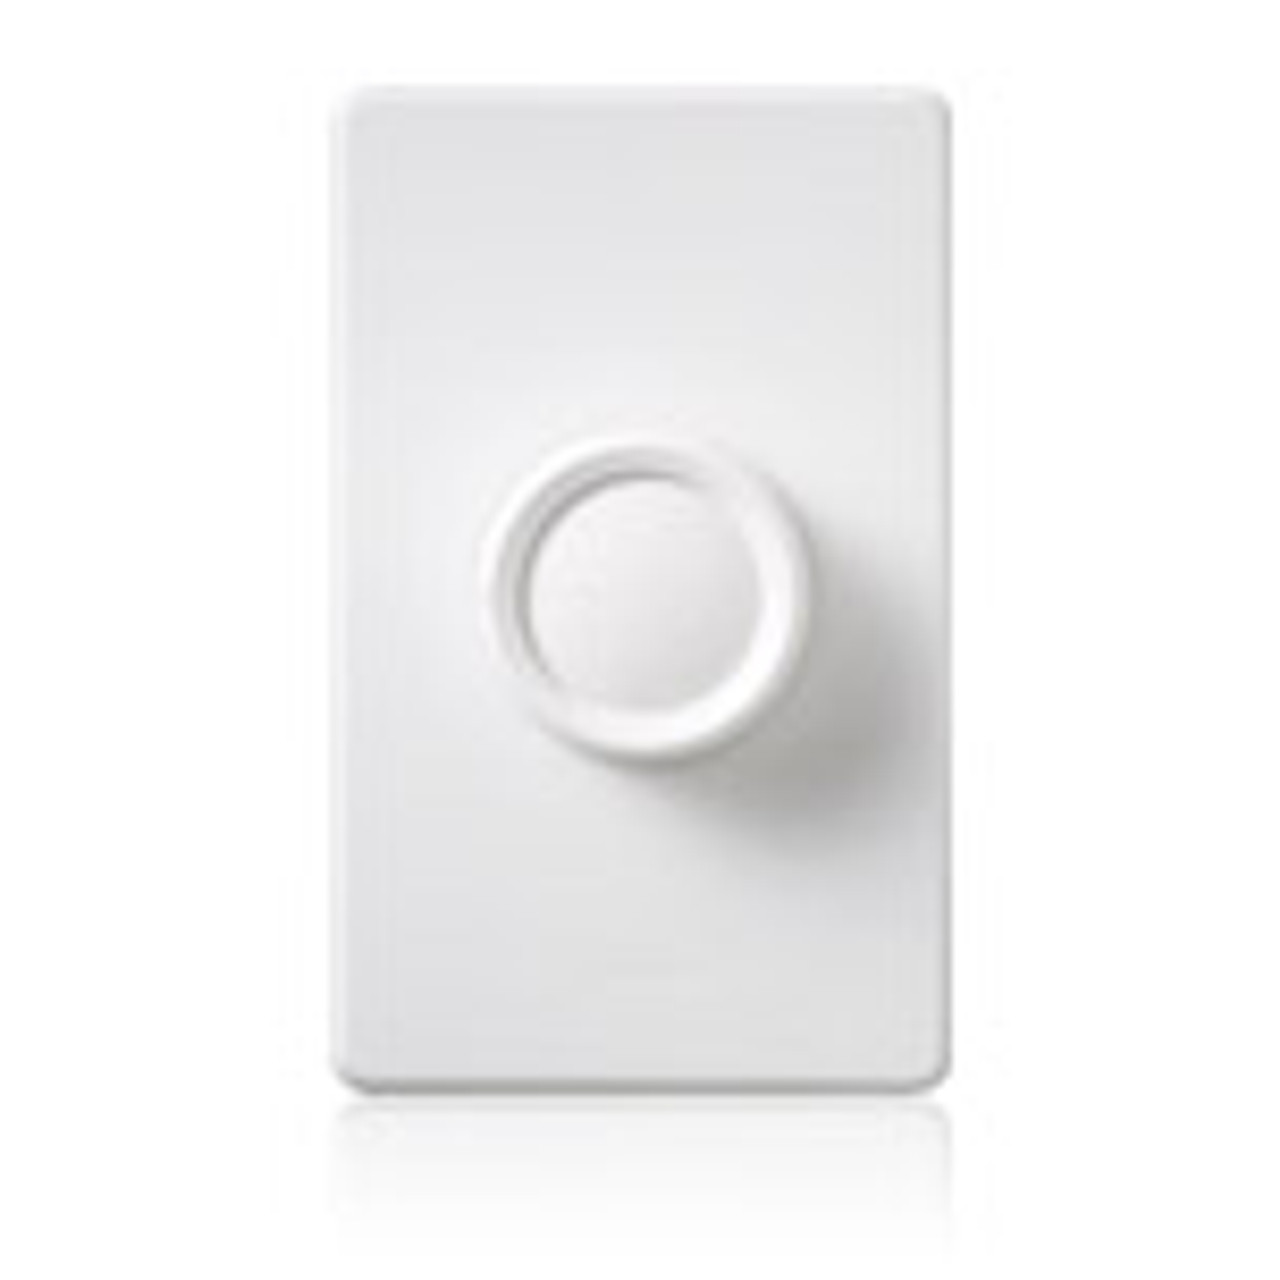 Lutron C2000 Rotary Dimmer